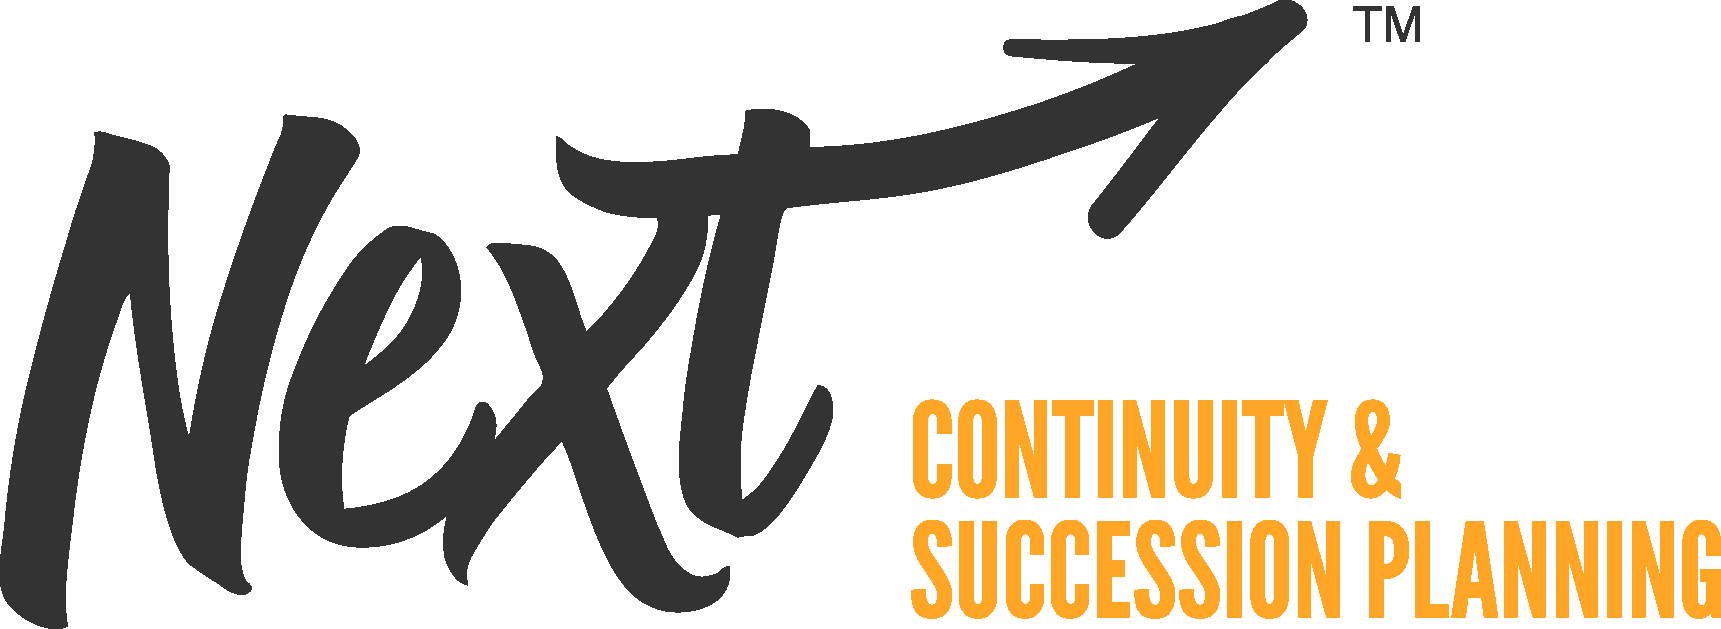 Next Continuity and Succession Planning logo - FIG Marketing